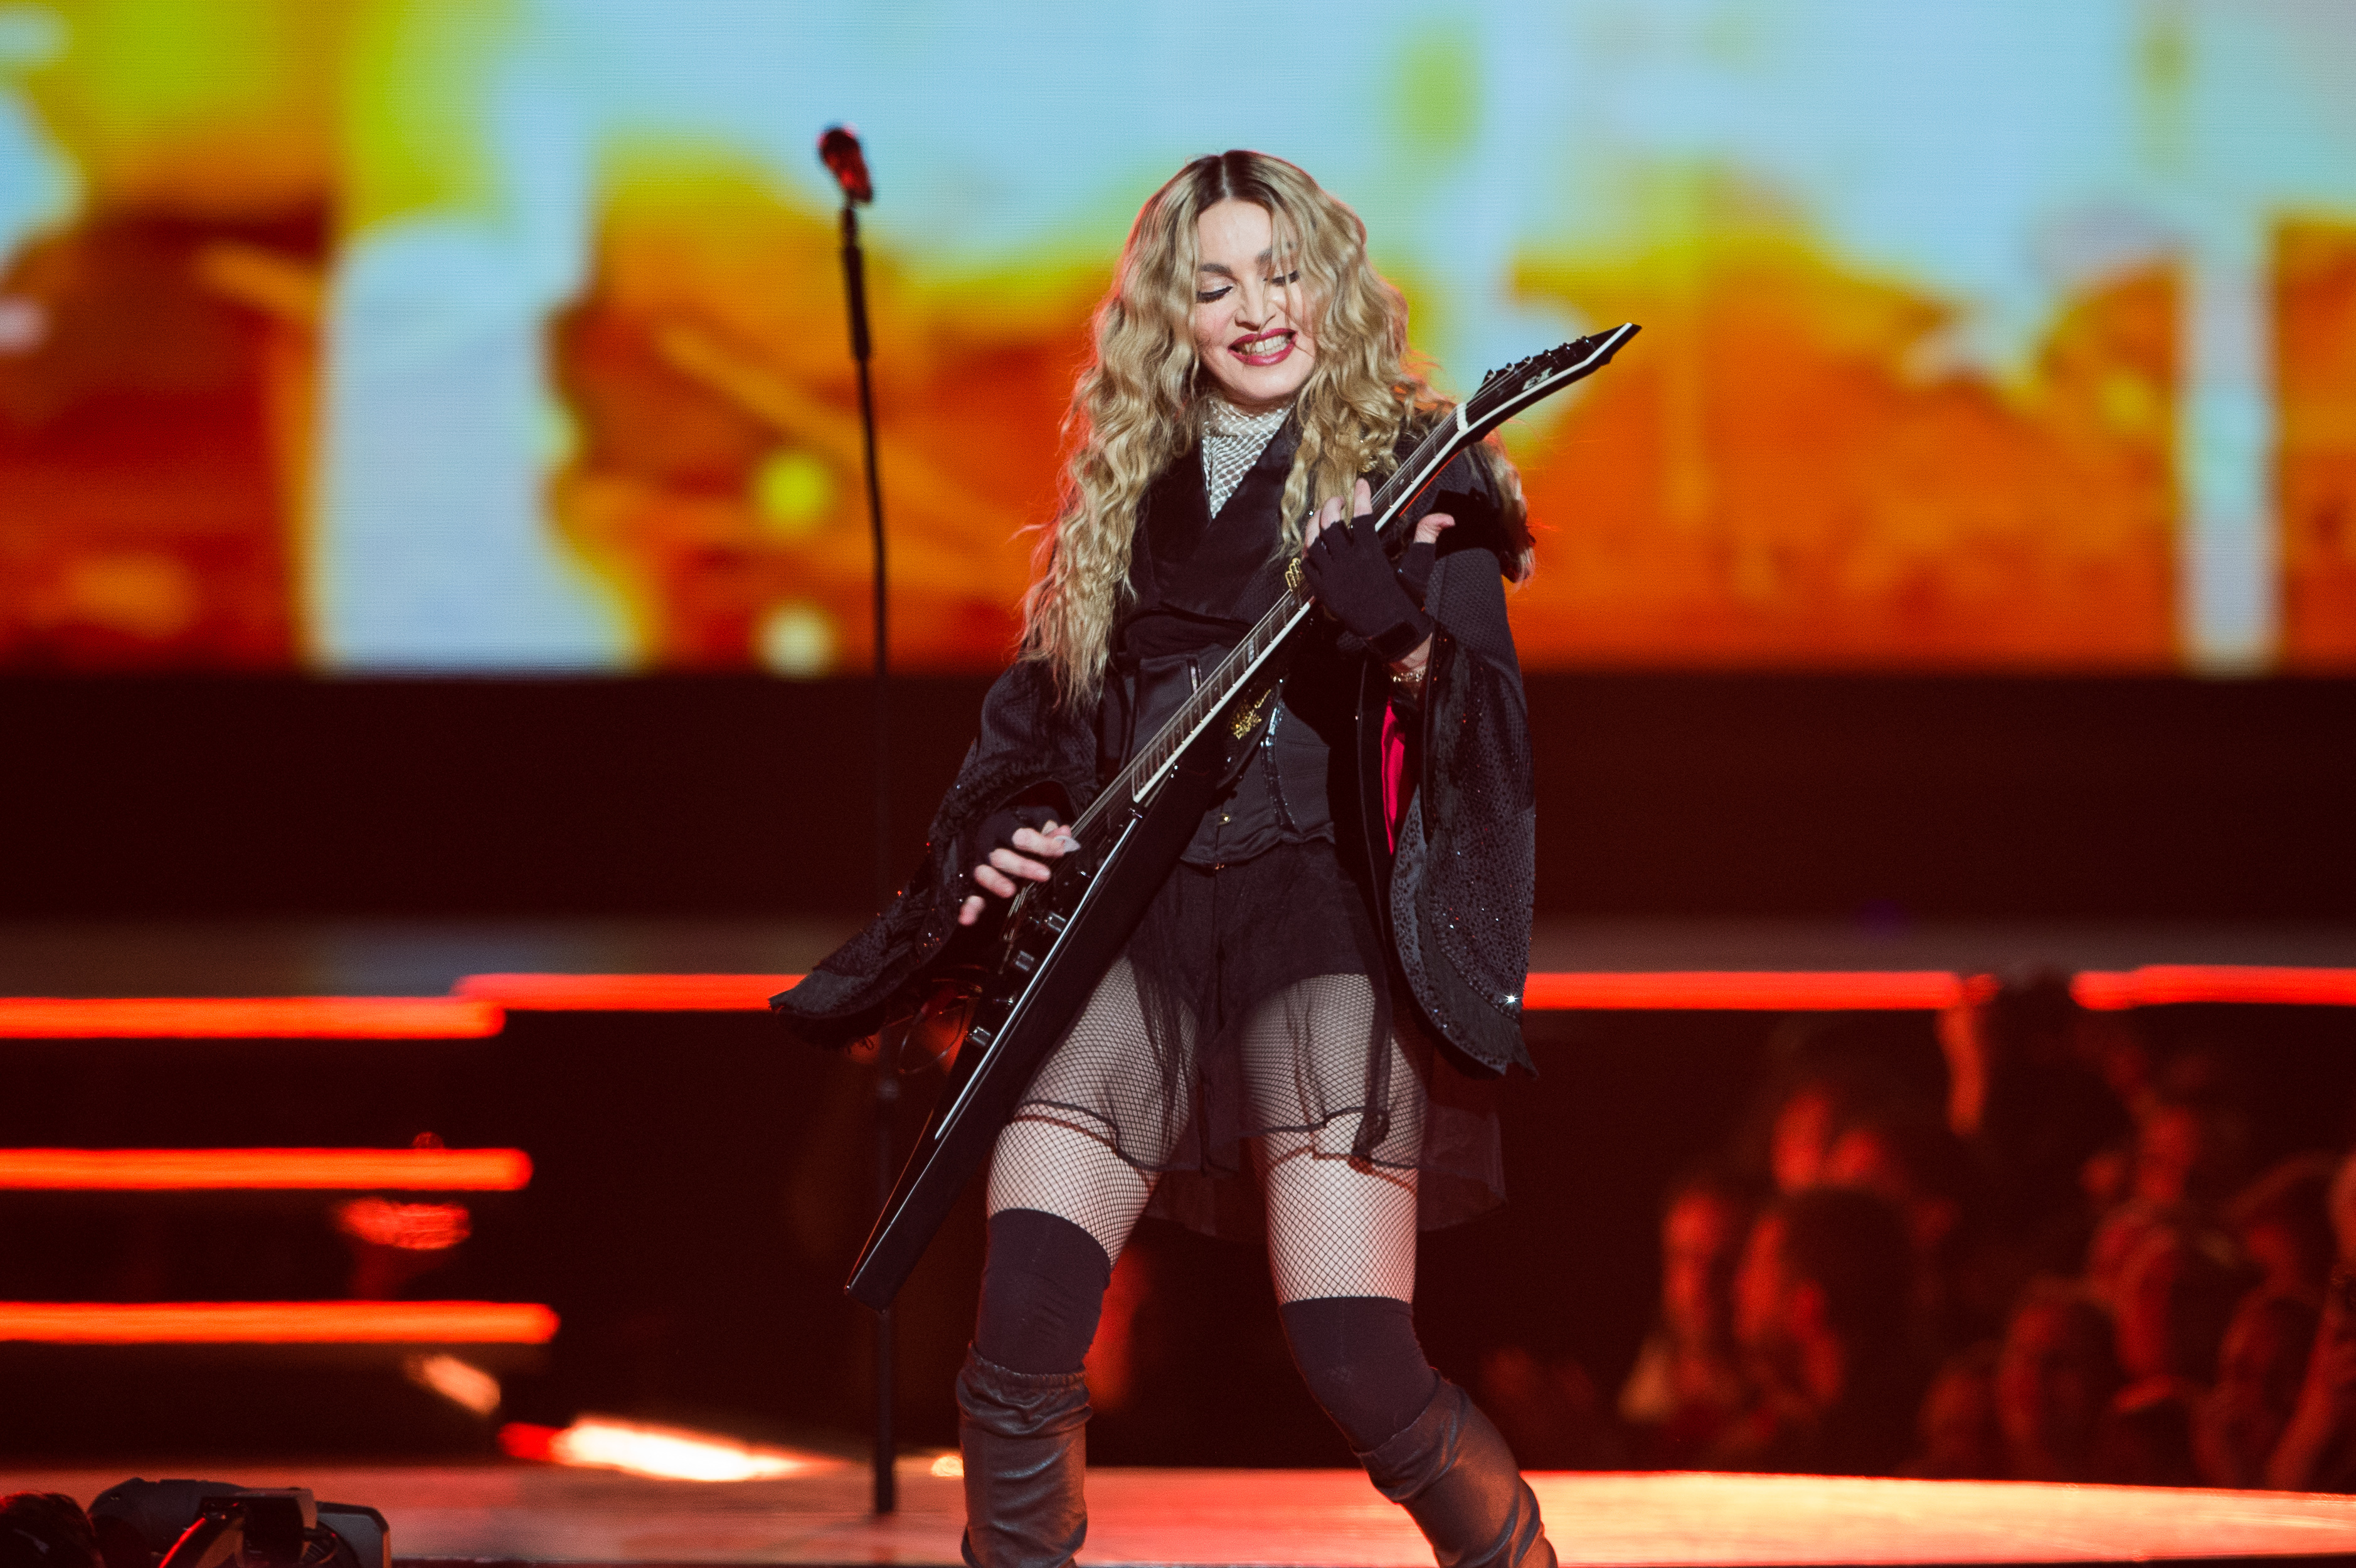 Madonna performs at AccorHotels Arena on December 9, 2015 in Paris, France.